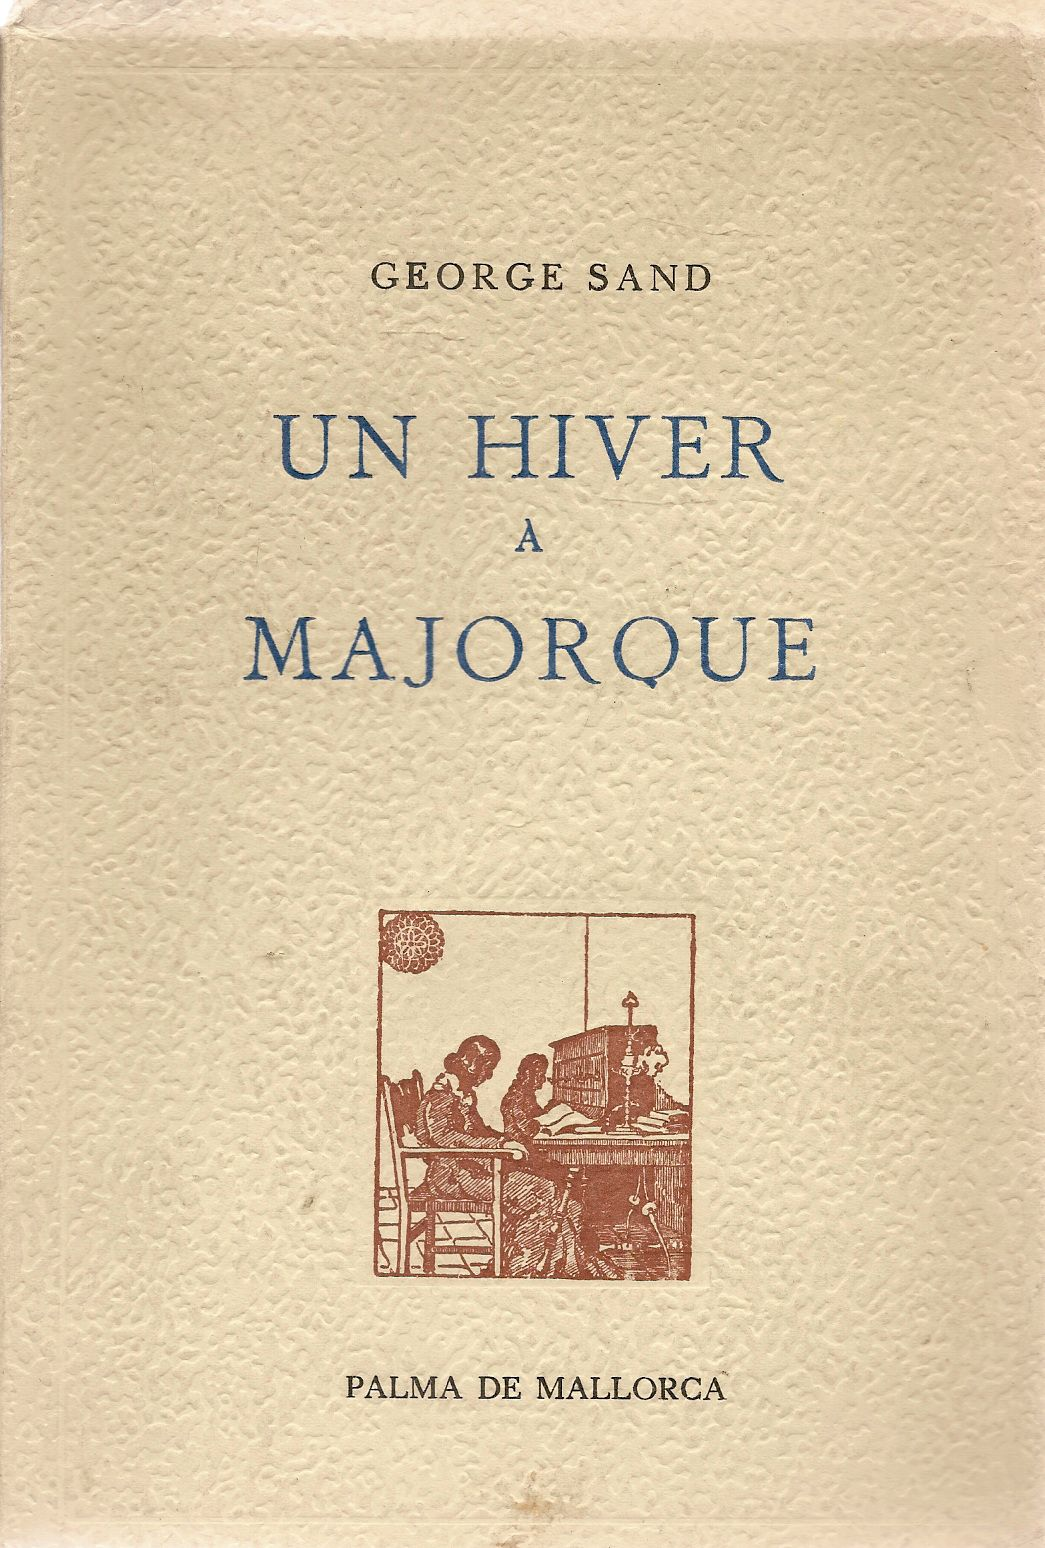 UN HIVER A MAJORQUE - GEORGE SAND - FRENCH TEXT